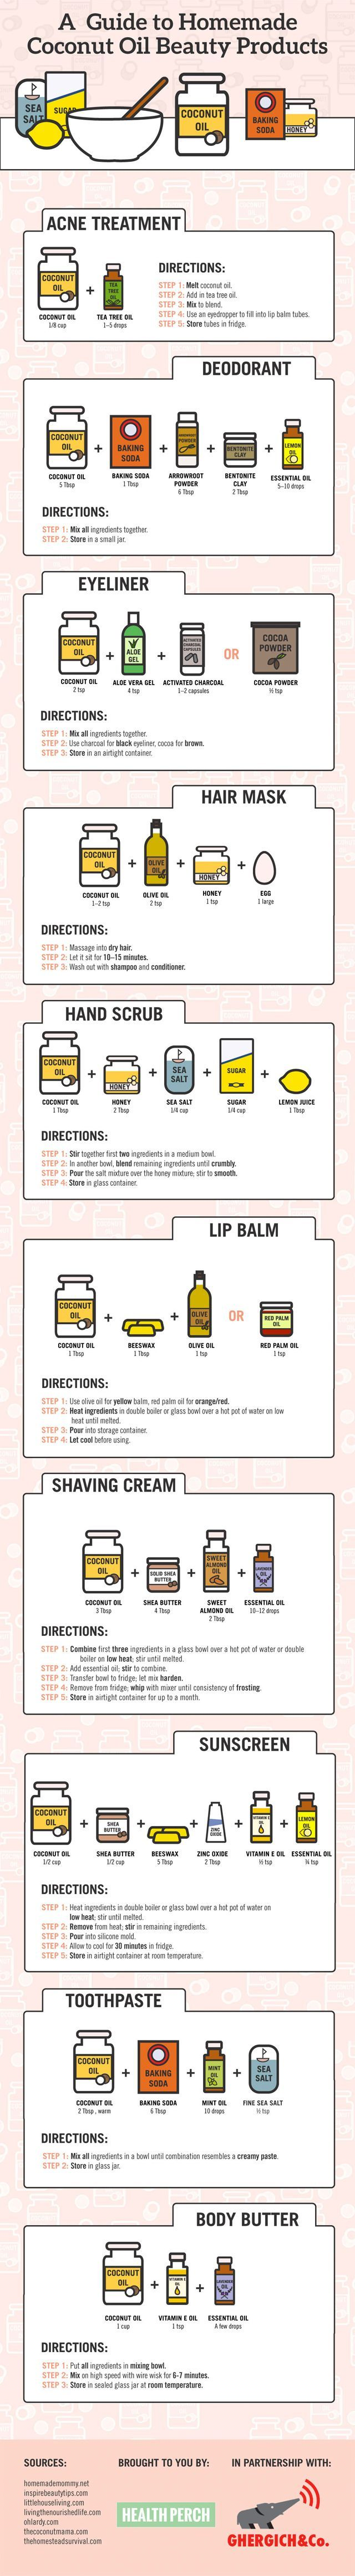 Natural homemade beauty recipes using #coconut oil http://DrHardick.com